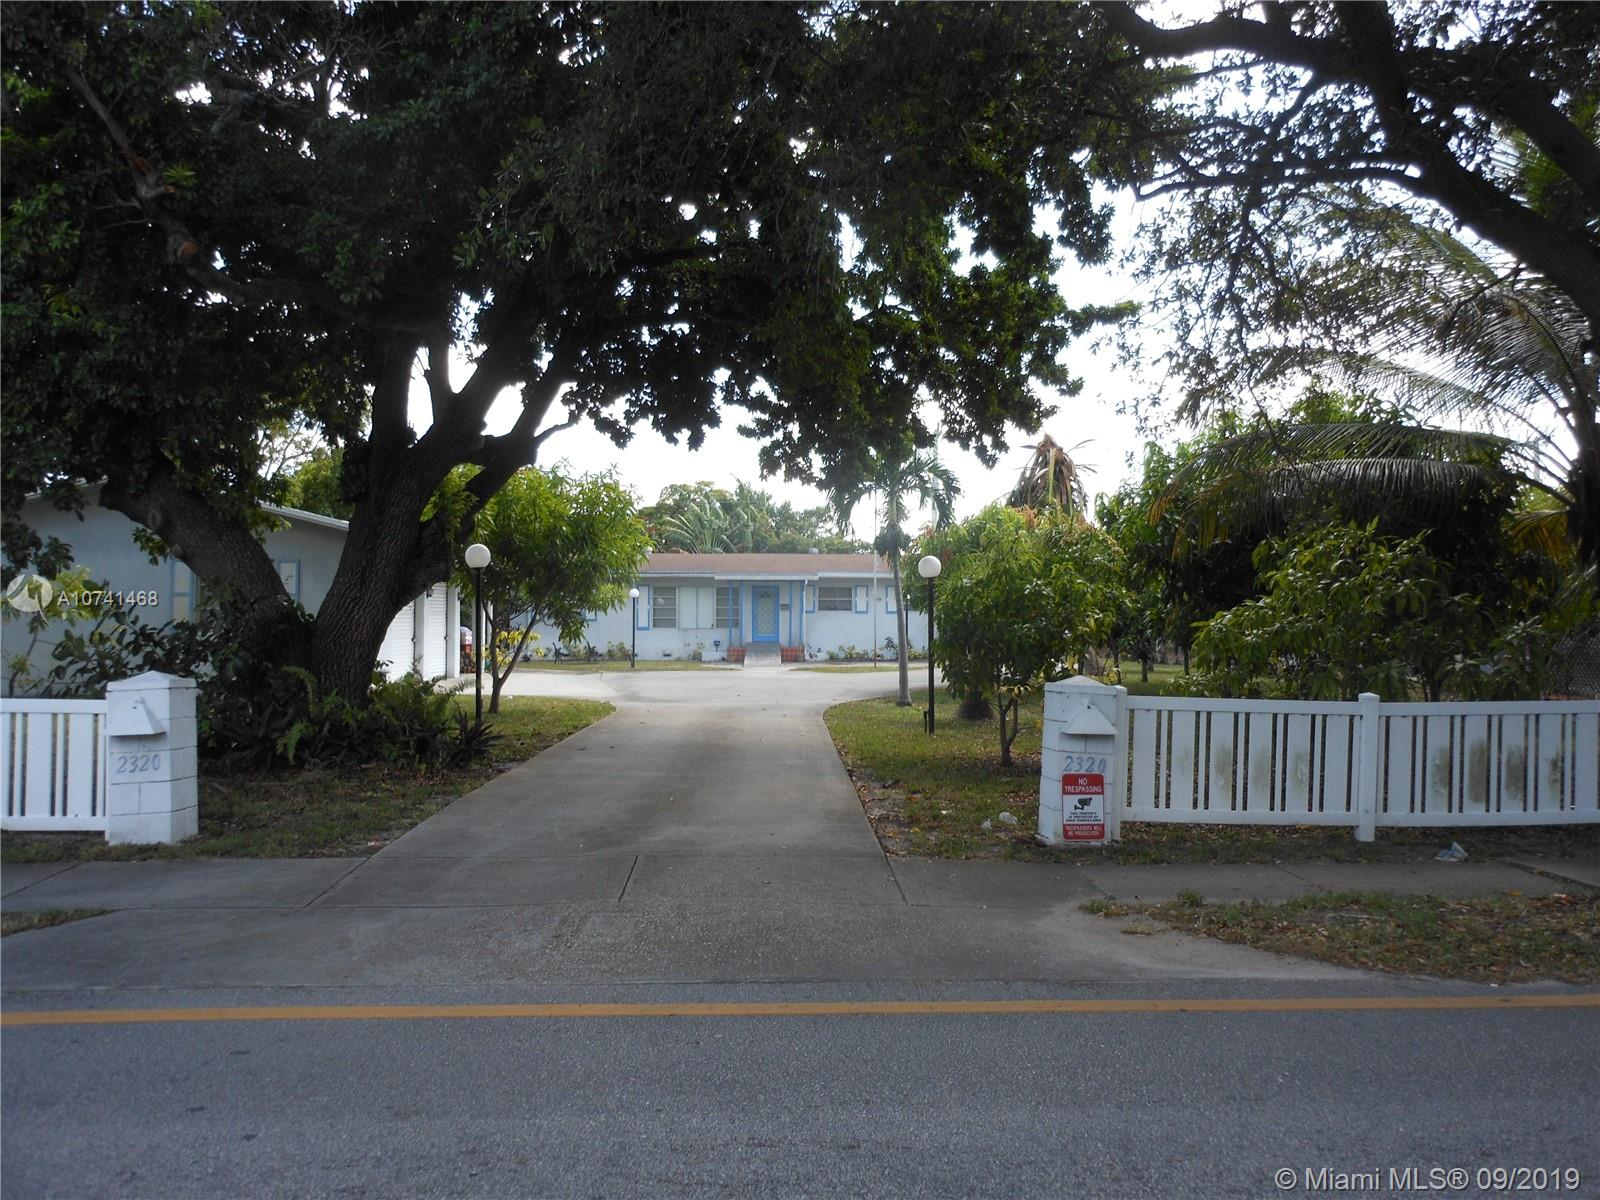 *****LAND FOR SALE 1/2 ACRE MULTI FAMILY NEGOTIABLE A MUCH SOUGHT AFTER DOUBLE LOT *****